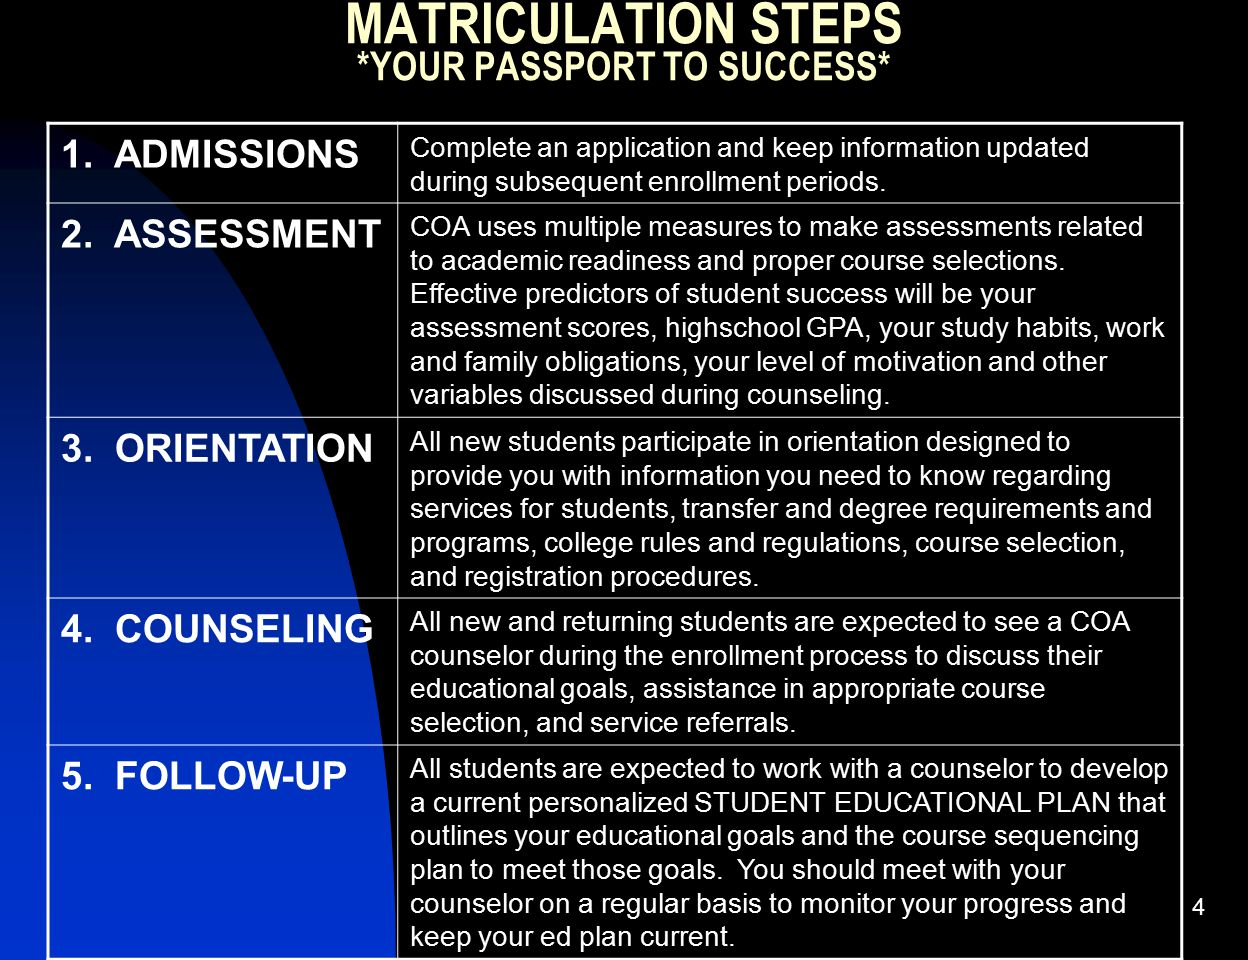 MATRICULATION STEPS *YOUR PASSPORT TO SUCCESS*